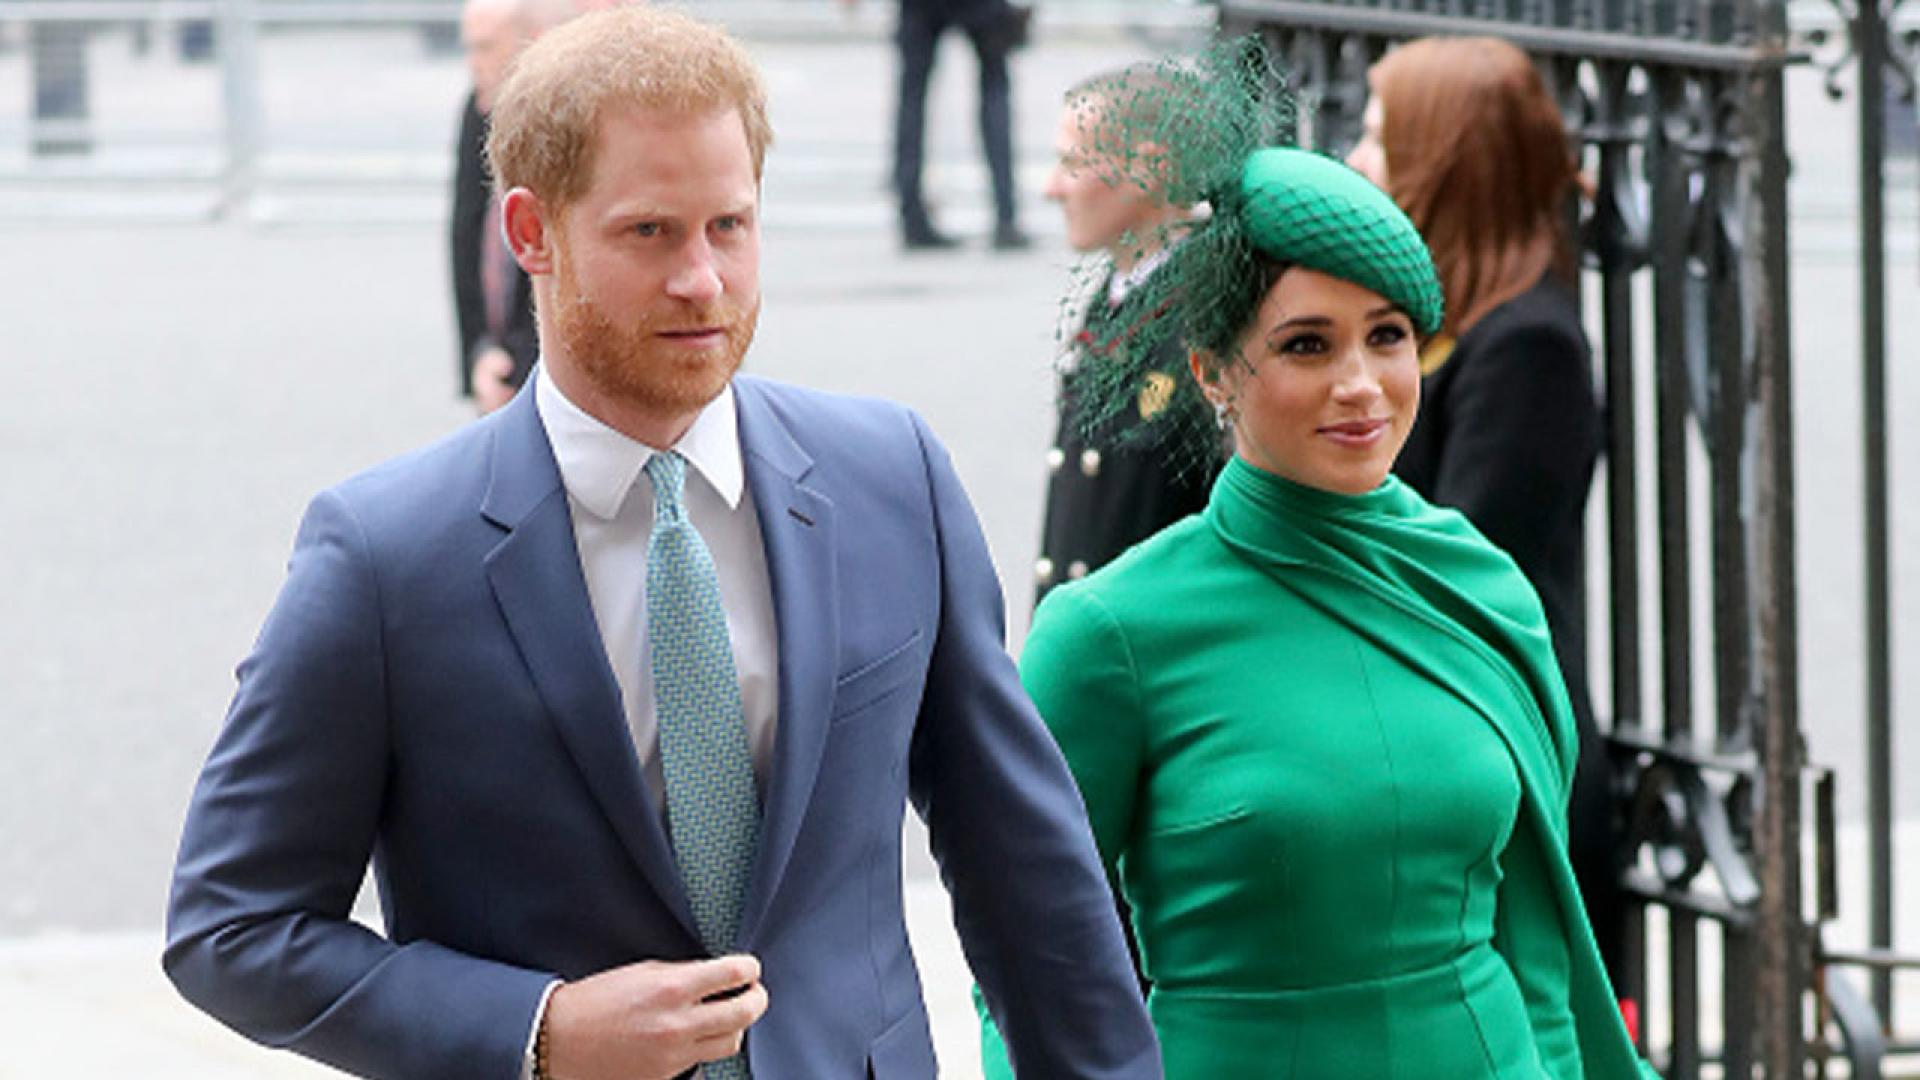 Prince Harry and Meghan Markle attending a 2020 Commonwealth Day Service event.